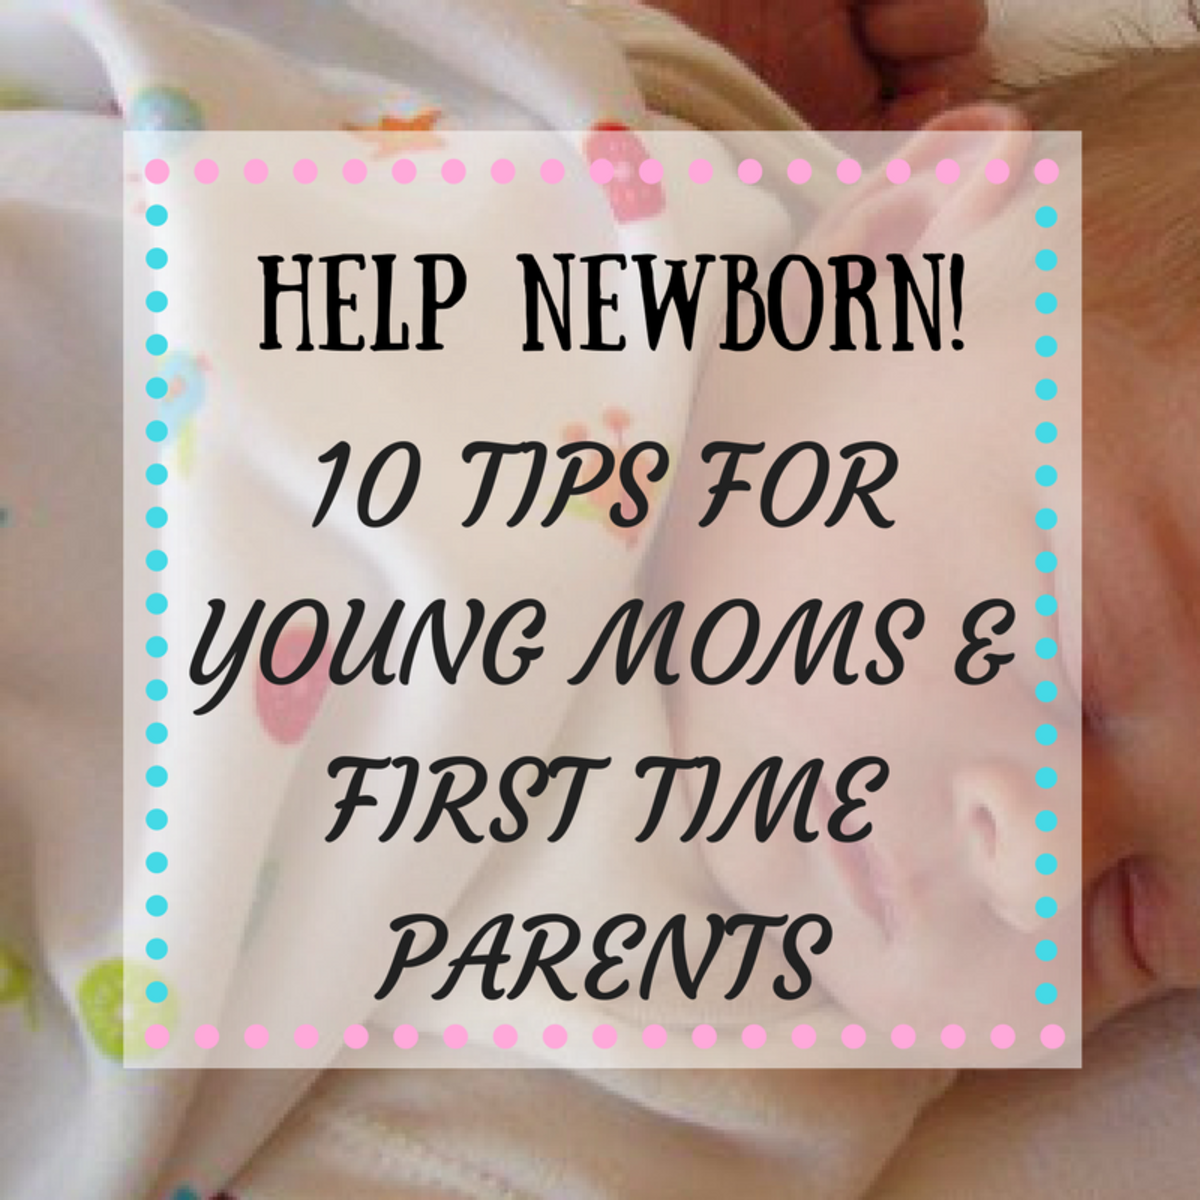 Help Newborn! 10 Tips for Young Mothers and First Time Parents